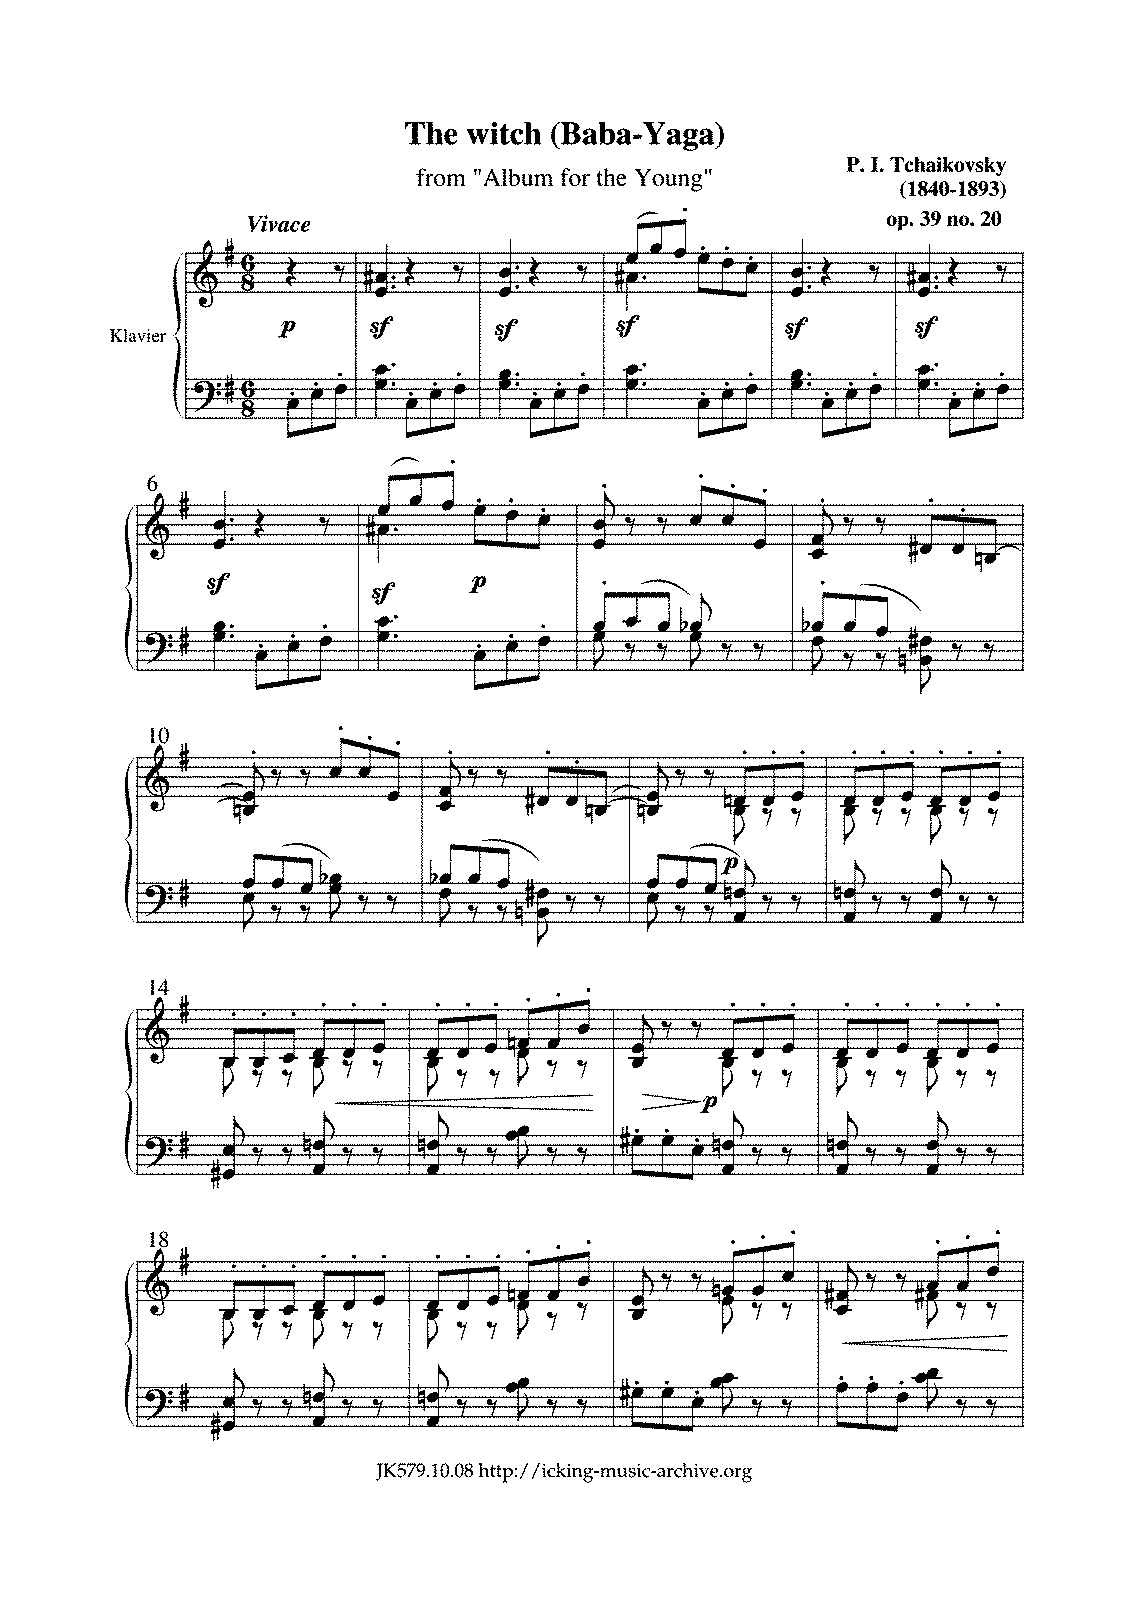 WIMA.be5e-Tchaikovsky The-witch.pdf